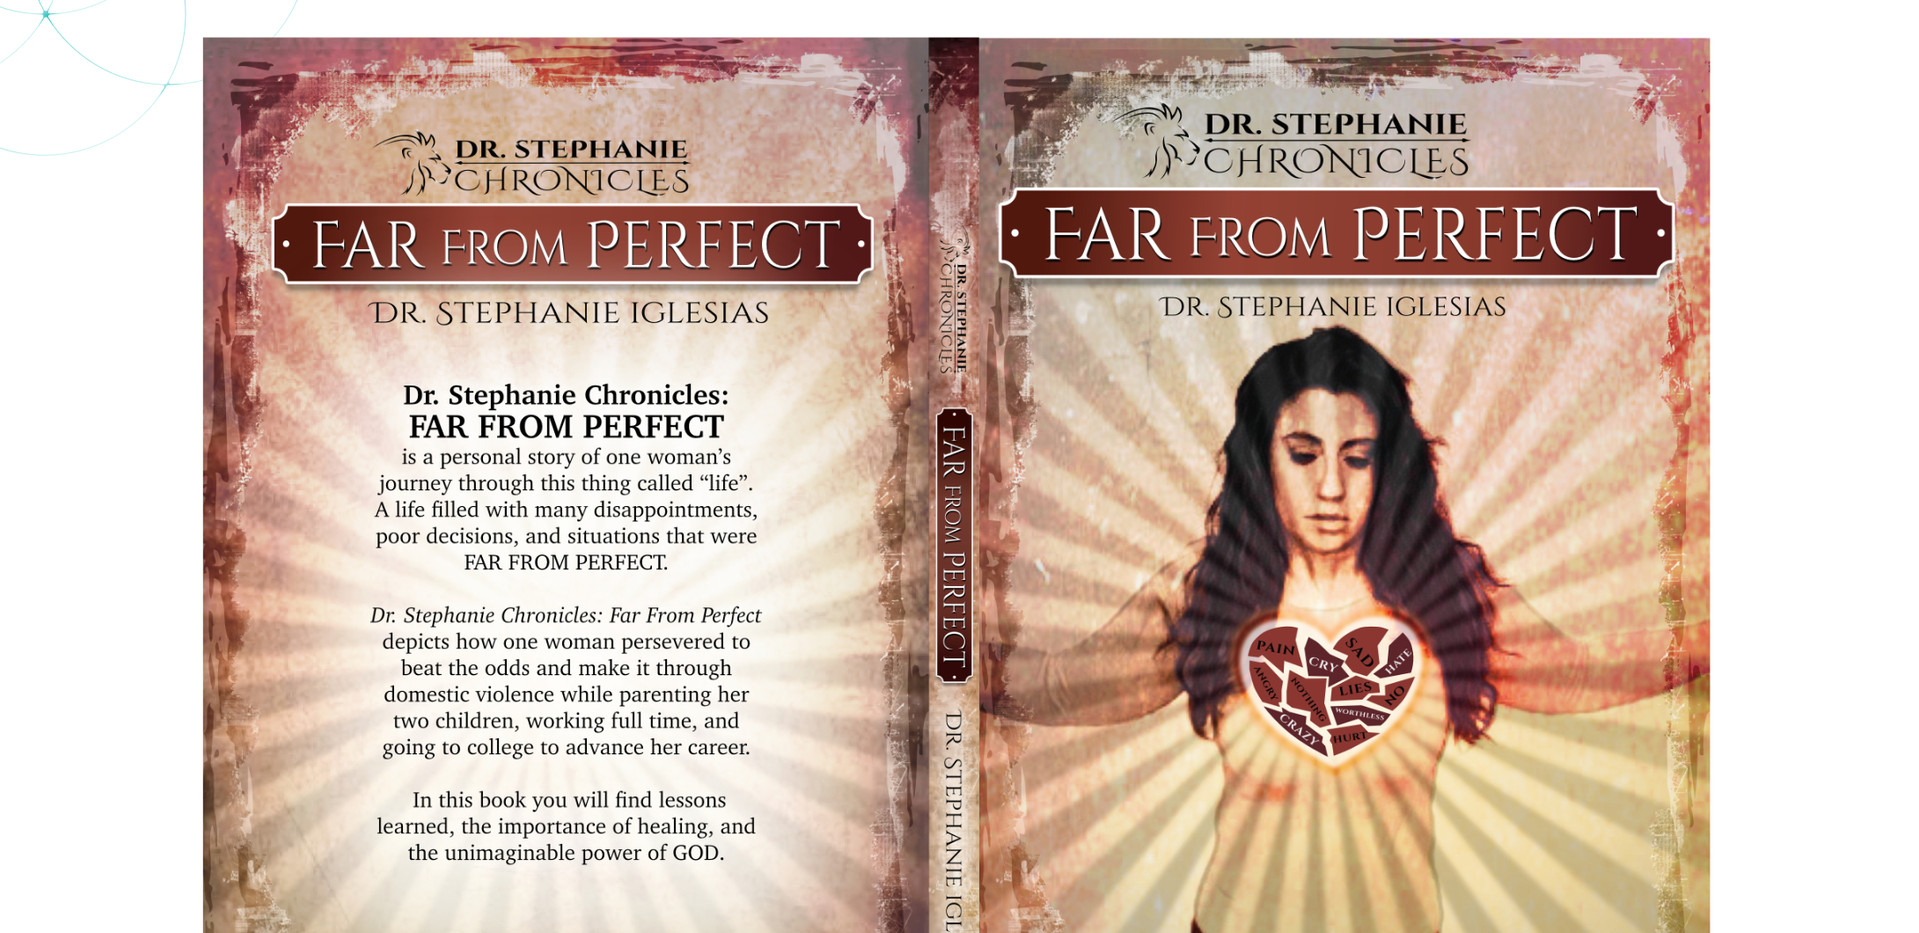 Paul-Micarelli-Far from Perfect-Book Cov